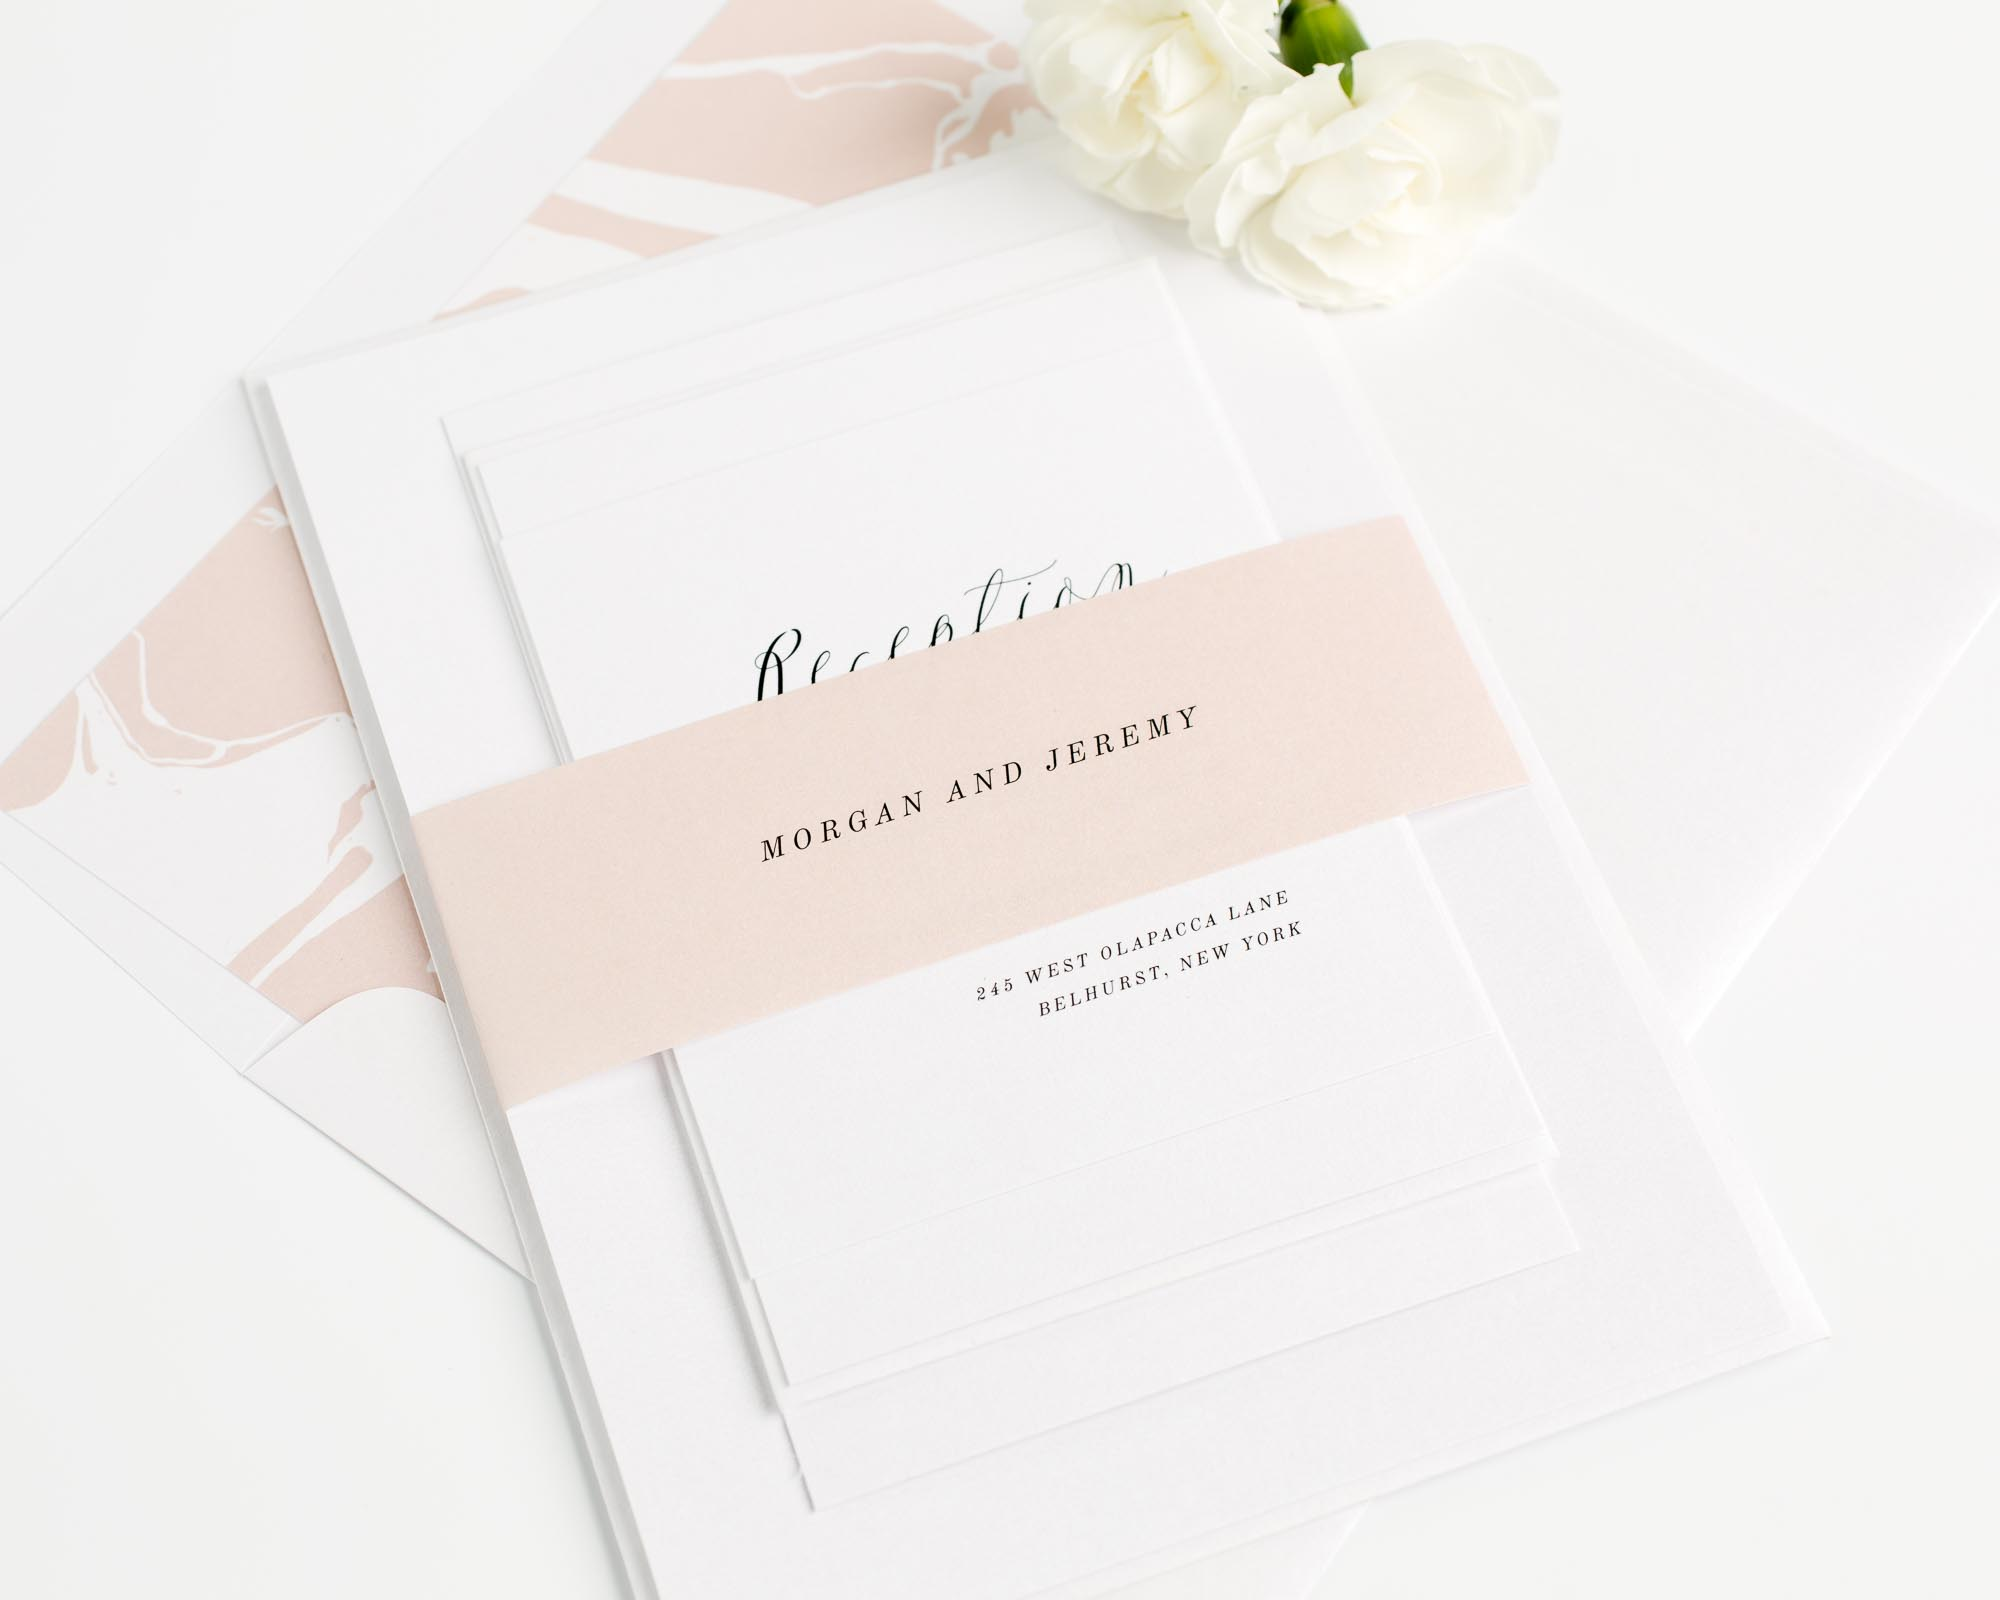 Calligraphy Wedding Invitations in Rose Gold